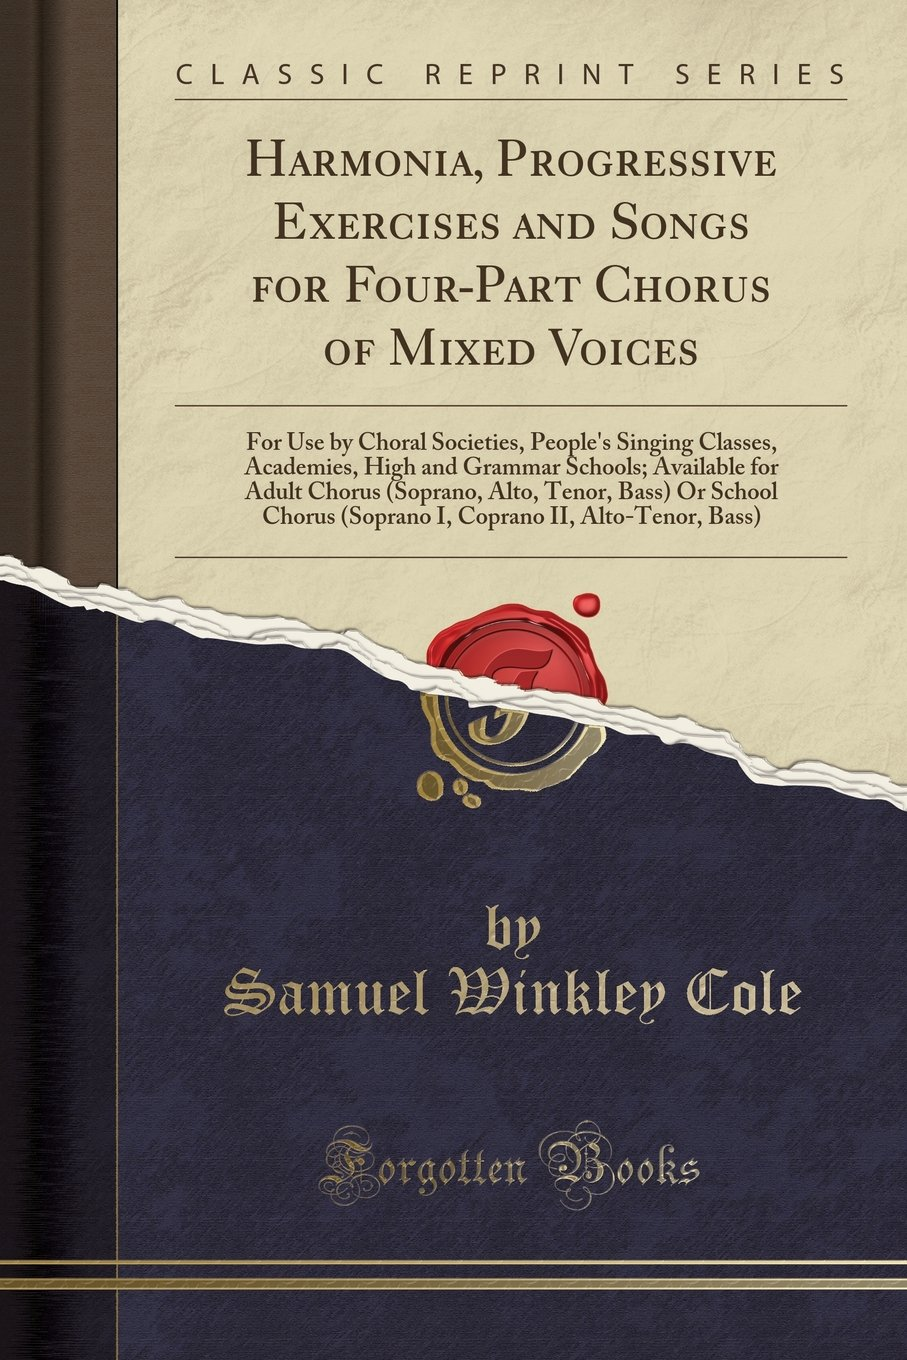 Download Harmonia, Progressive Exercises and Songs for Four-Part Chorus of Mixed Voices: For Use by Choral Societies, People's Singing Classes, Academies, High Tenor, Bass Or School Chorus (Soprano I pdf